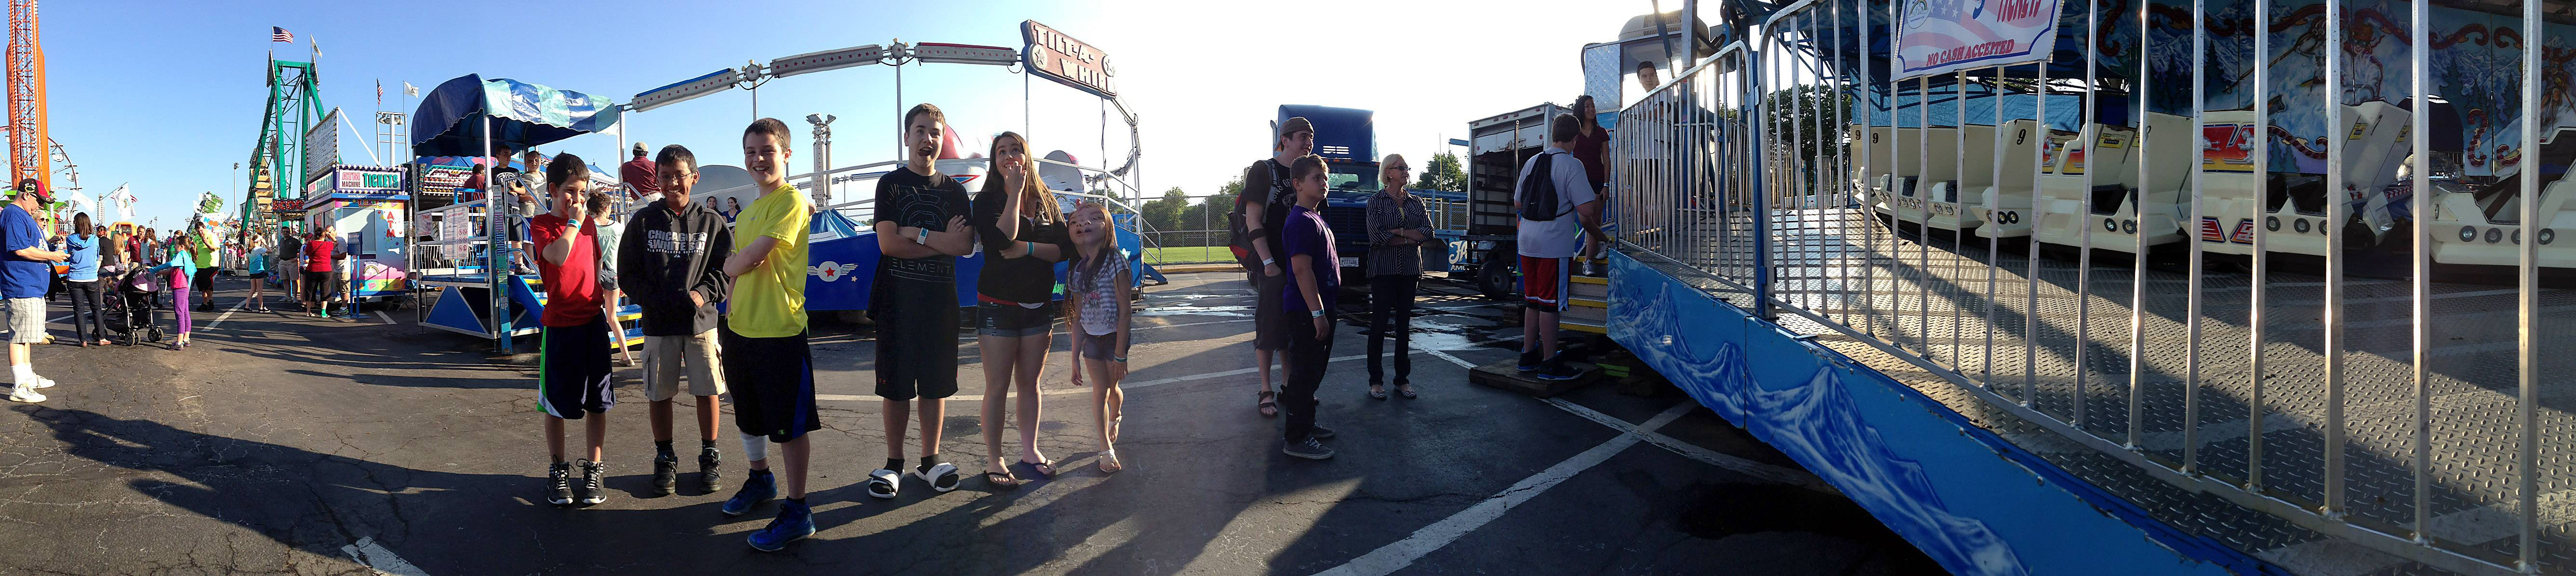 Youths get ready to get their thrill on riding the Matterhorn at the Elk Grove Village 2013 Rotary Fest.